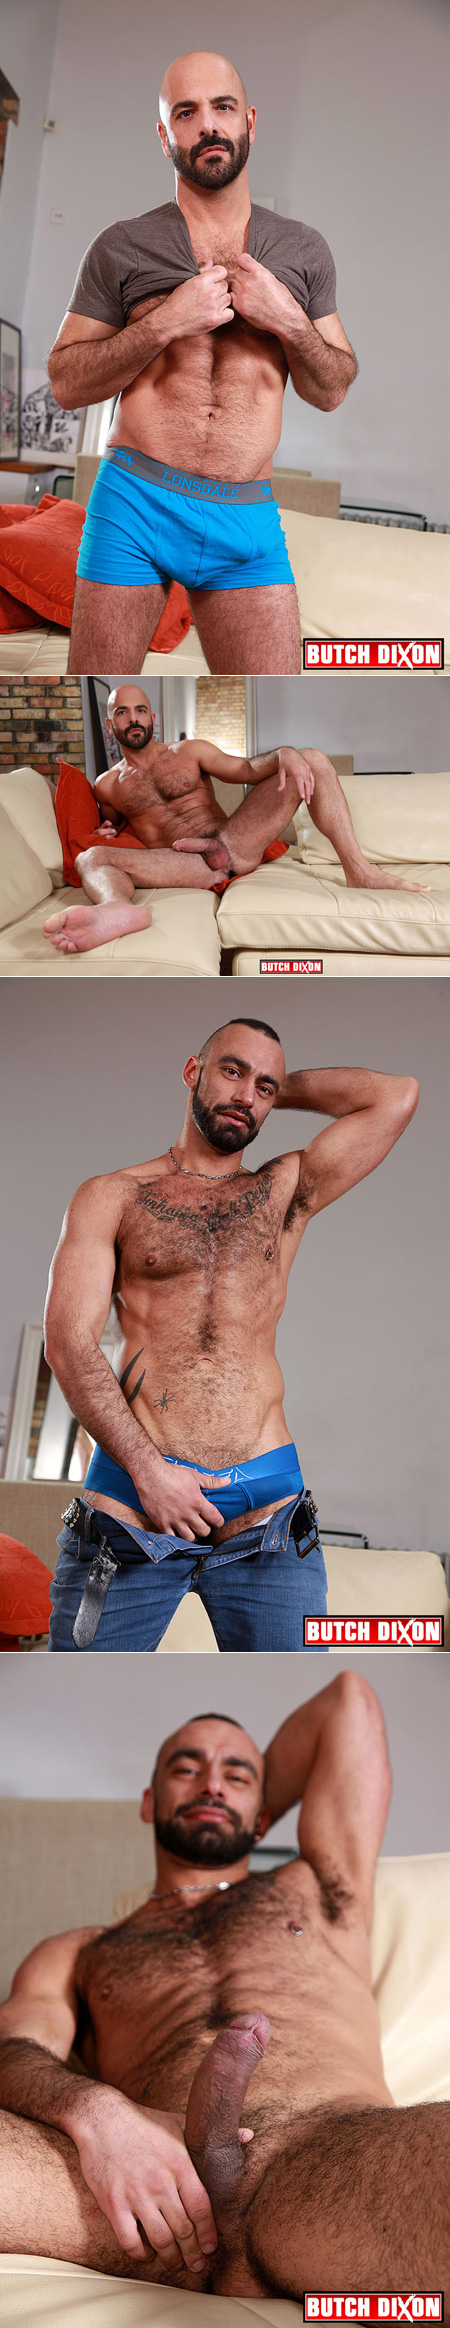 Very hairy muscle men showing off their naked bodies.